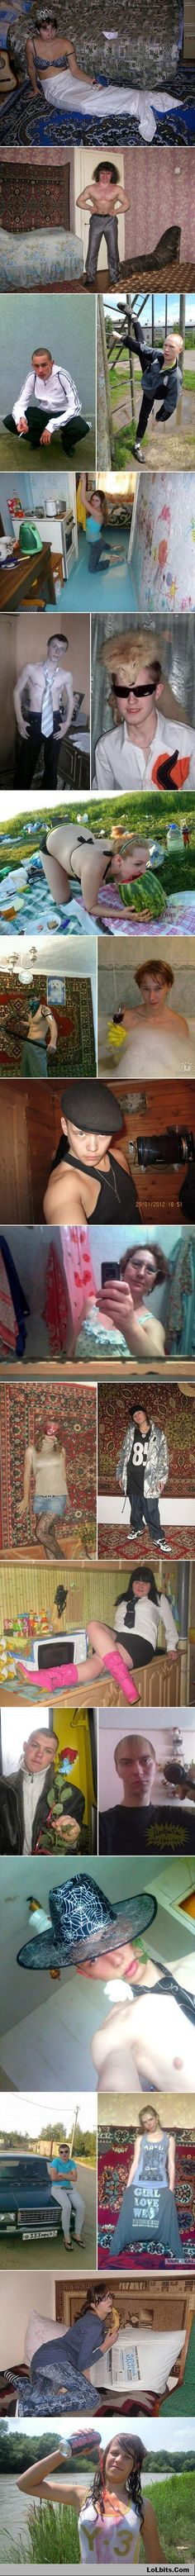 Emgn Russian Dating Sites NoJustNo Pinterest Russian - 24 hilarious profile picture fails from russian social networks that will make you cringe